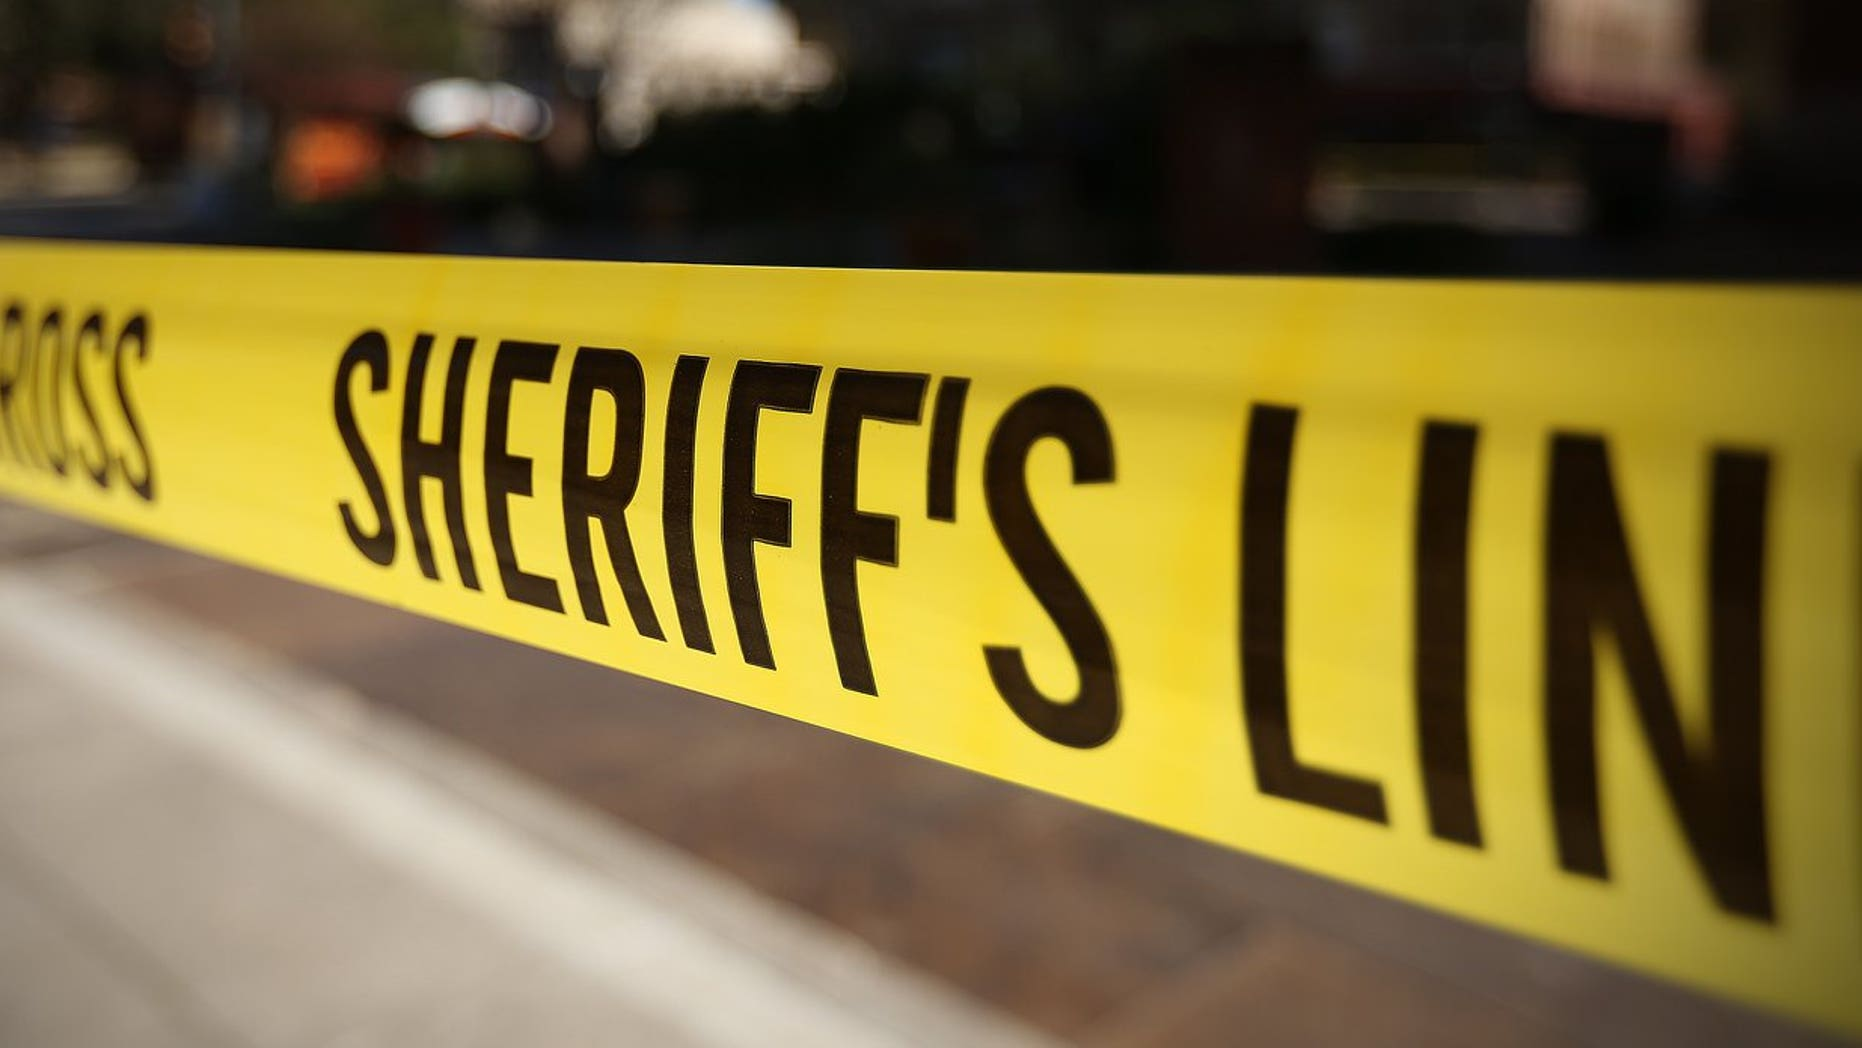 Authorities in Bexar County, Texas, on Thursday responded to reports of three individuals with fatal gunshot wounds inside a gated community.